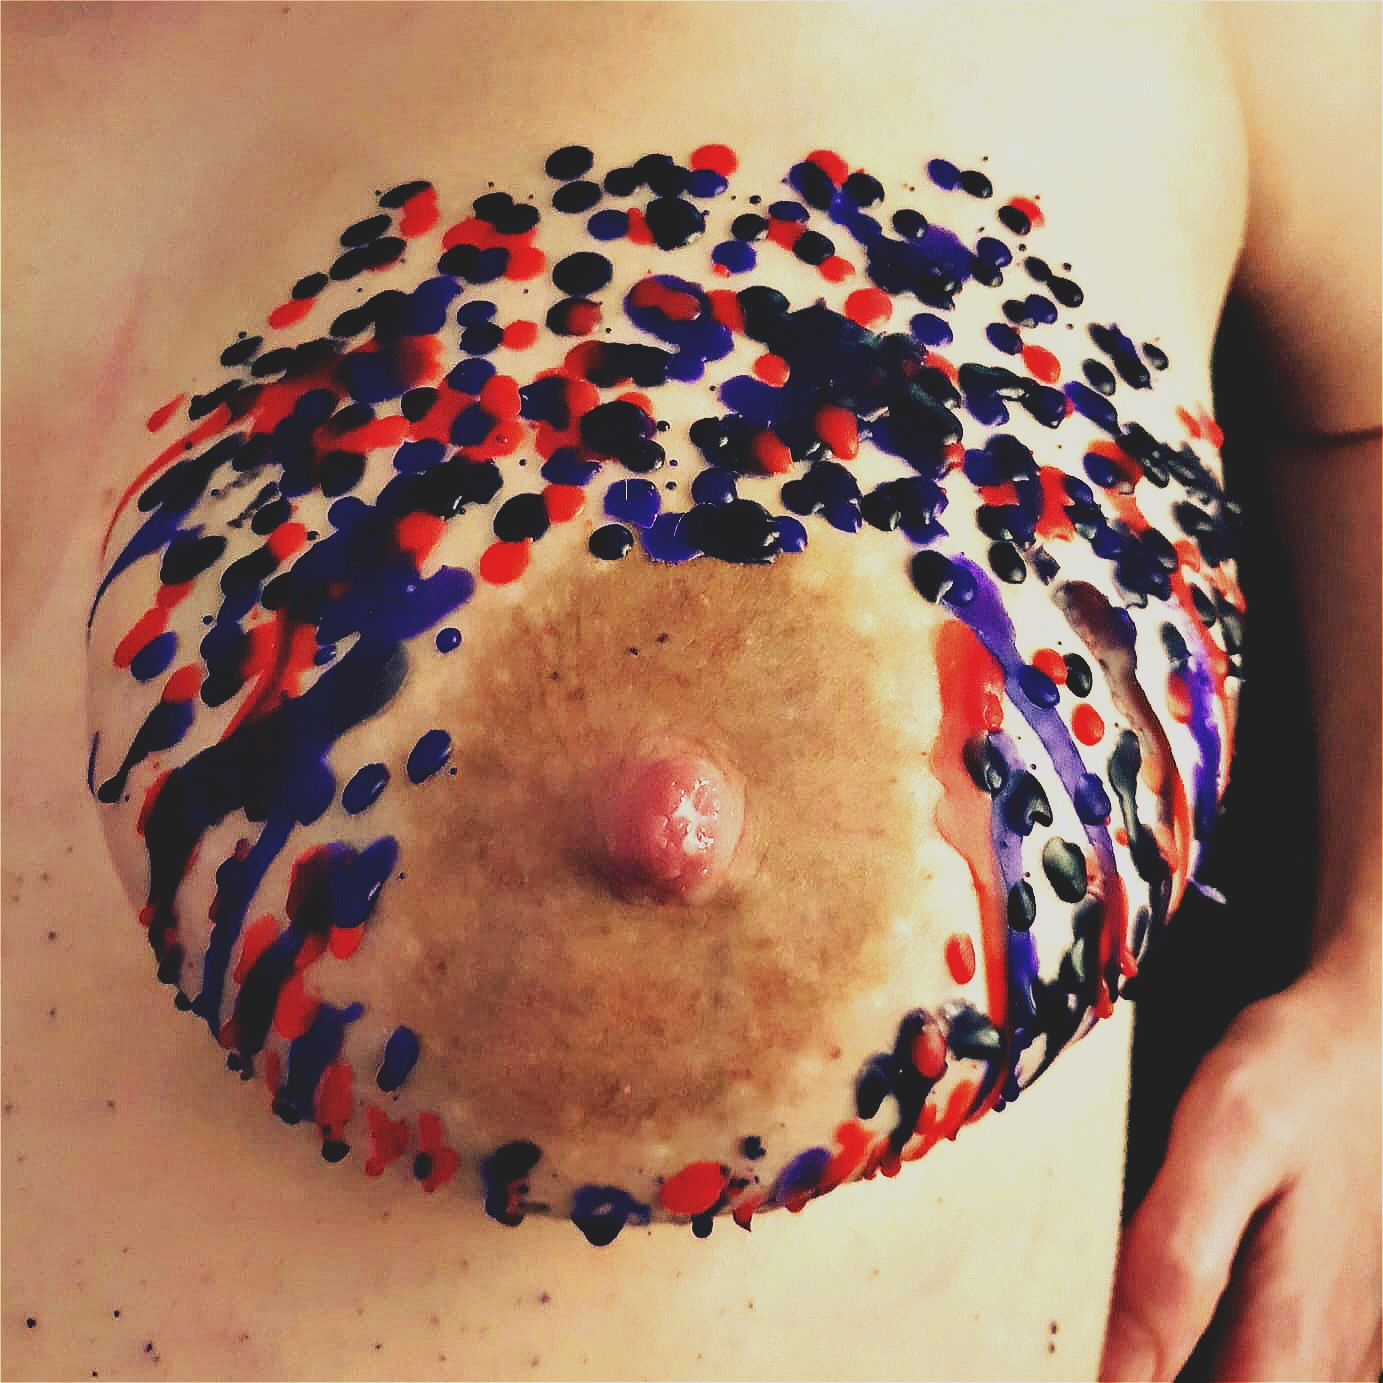 A photo of my left breast, decorated with drips of black, purple and red wax